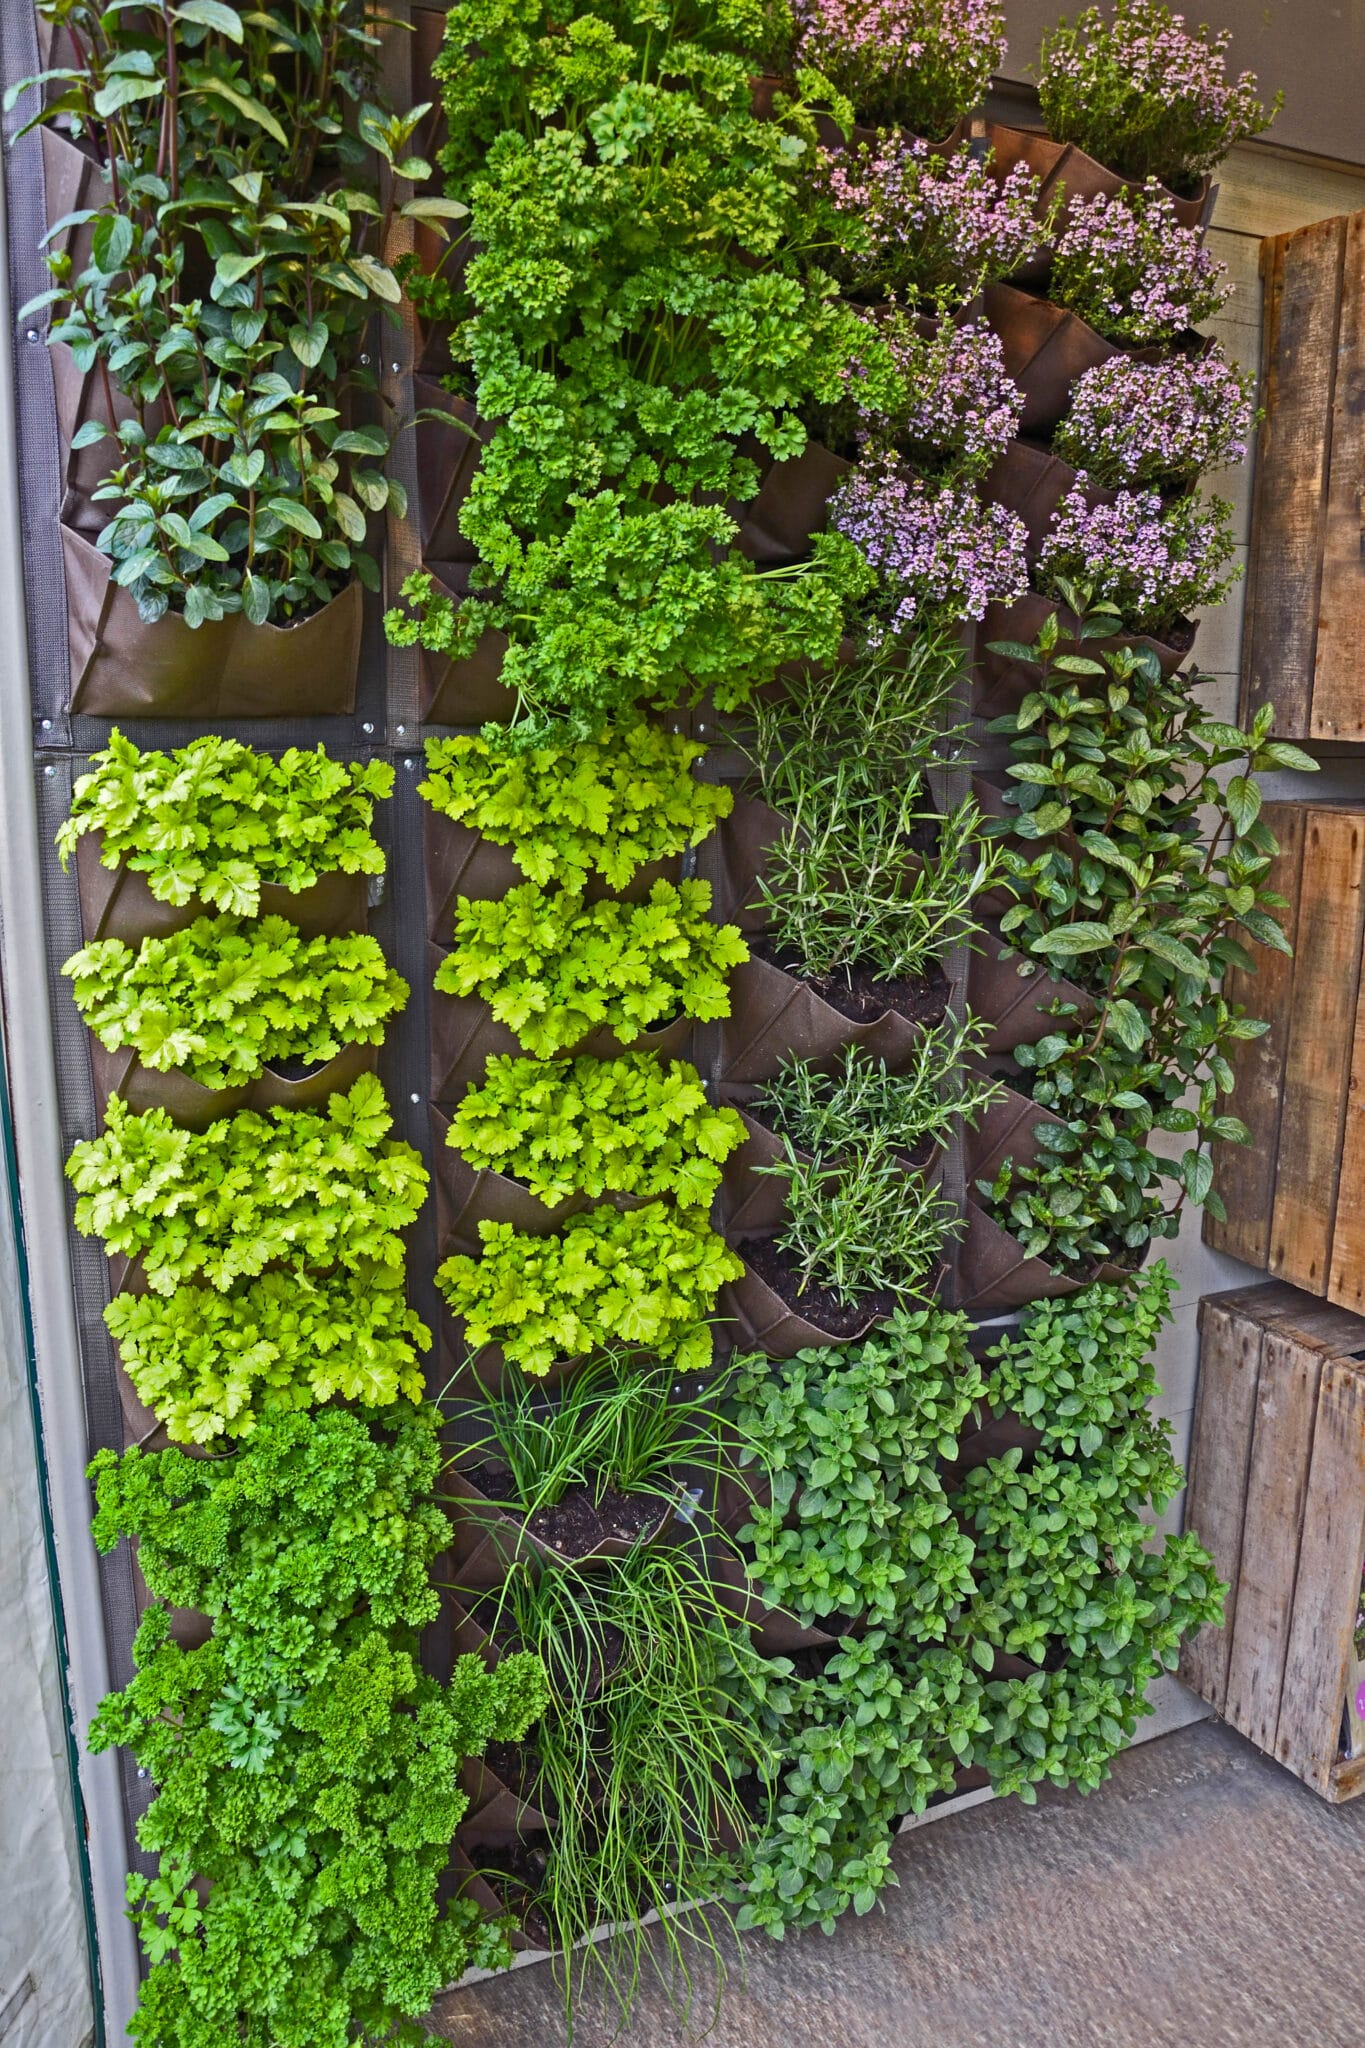 Assorted herbs and flowers growing in canvas sacks on a wall mounted rack as a vertical garden.